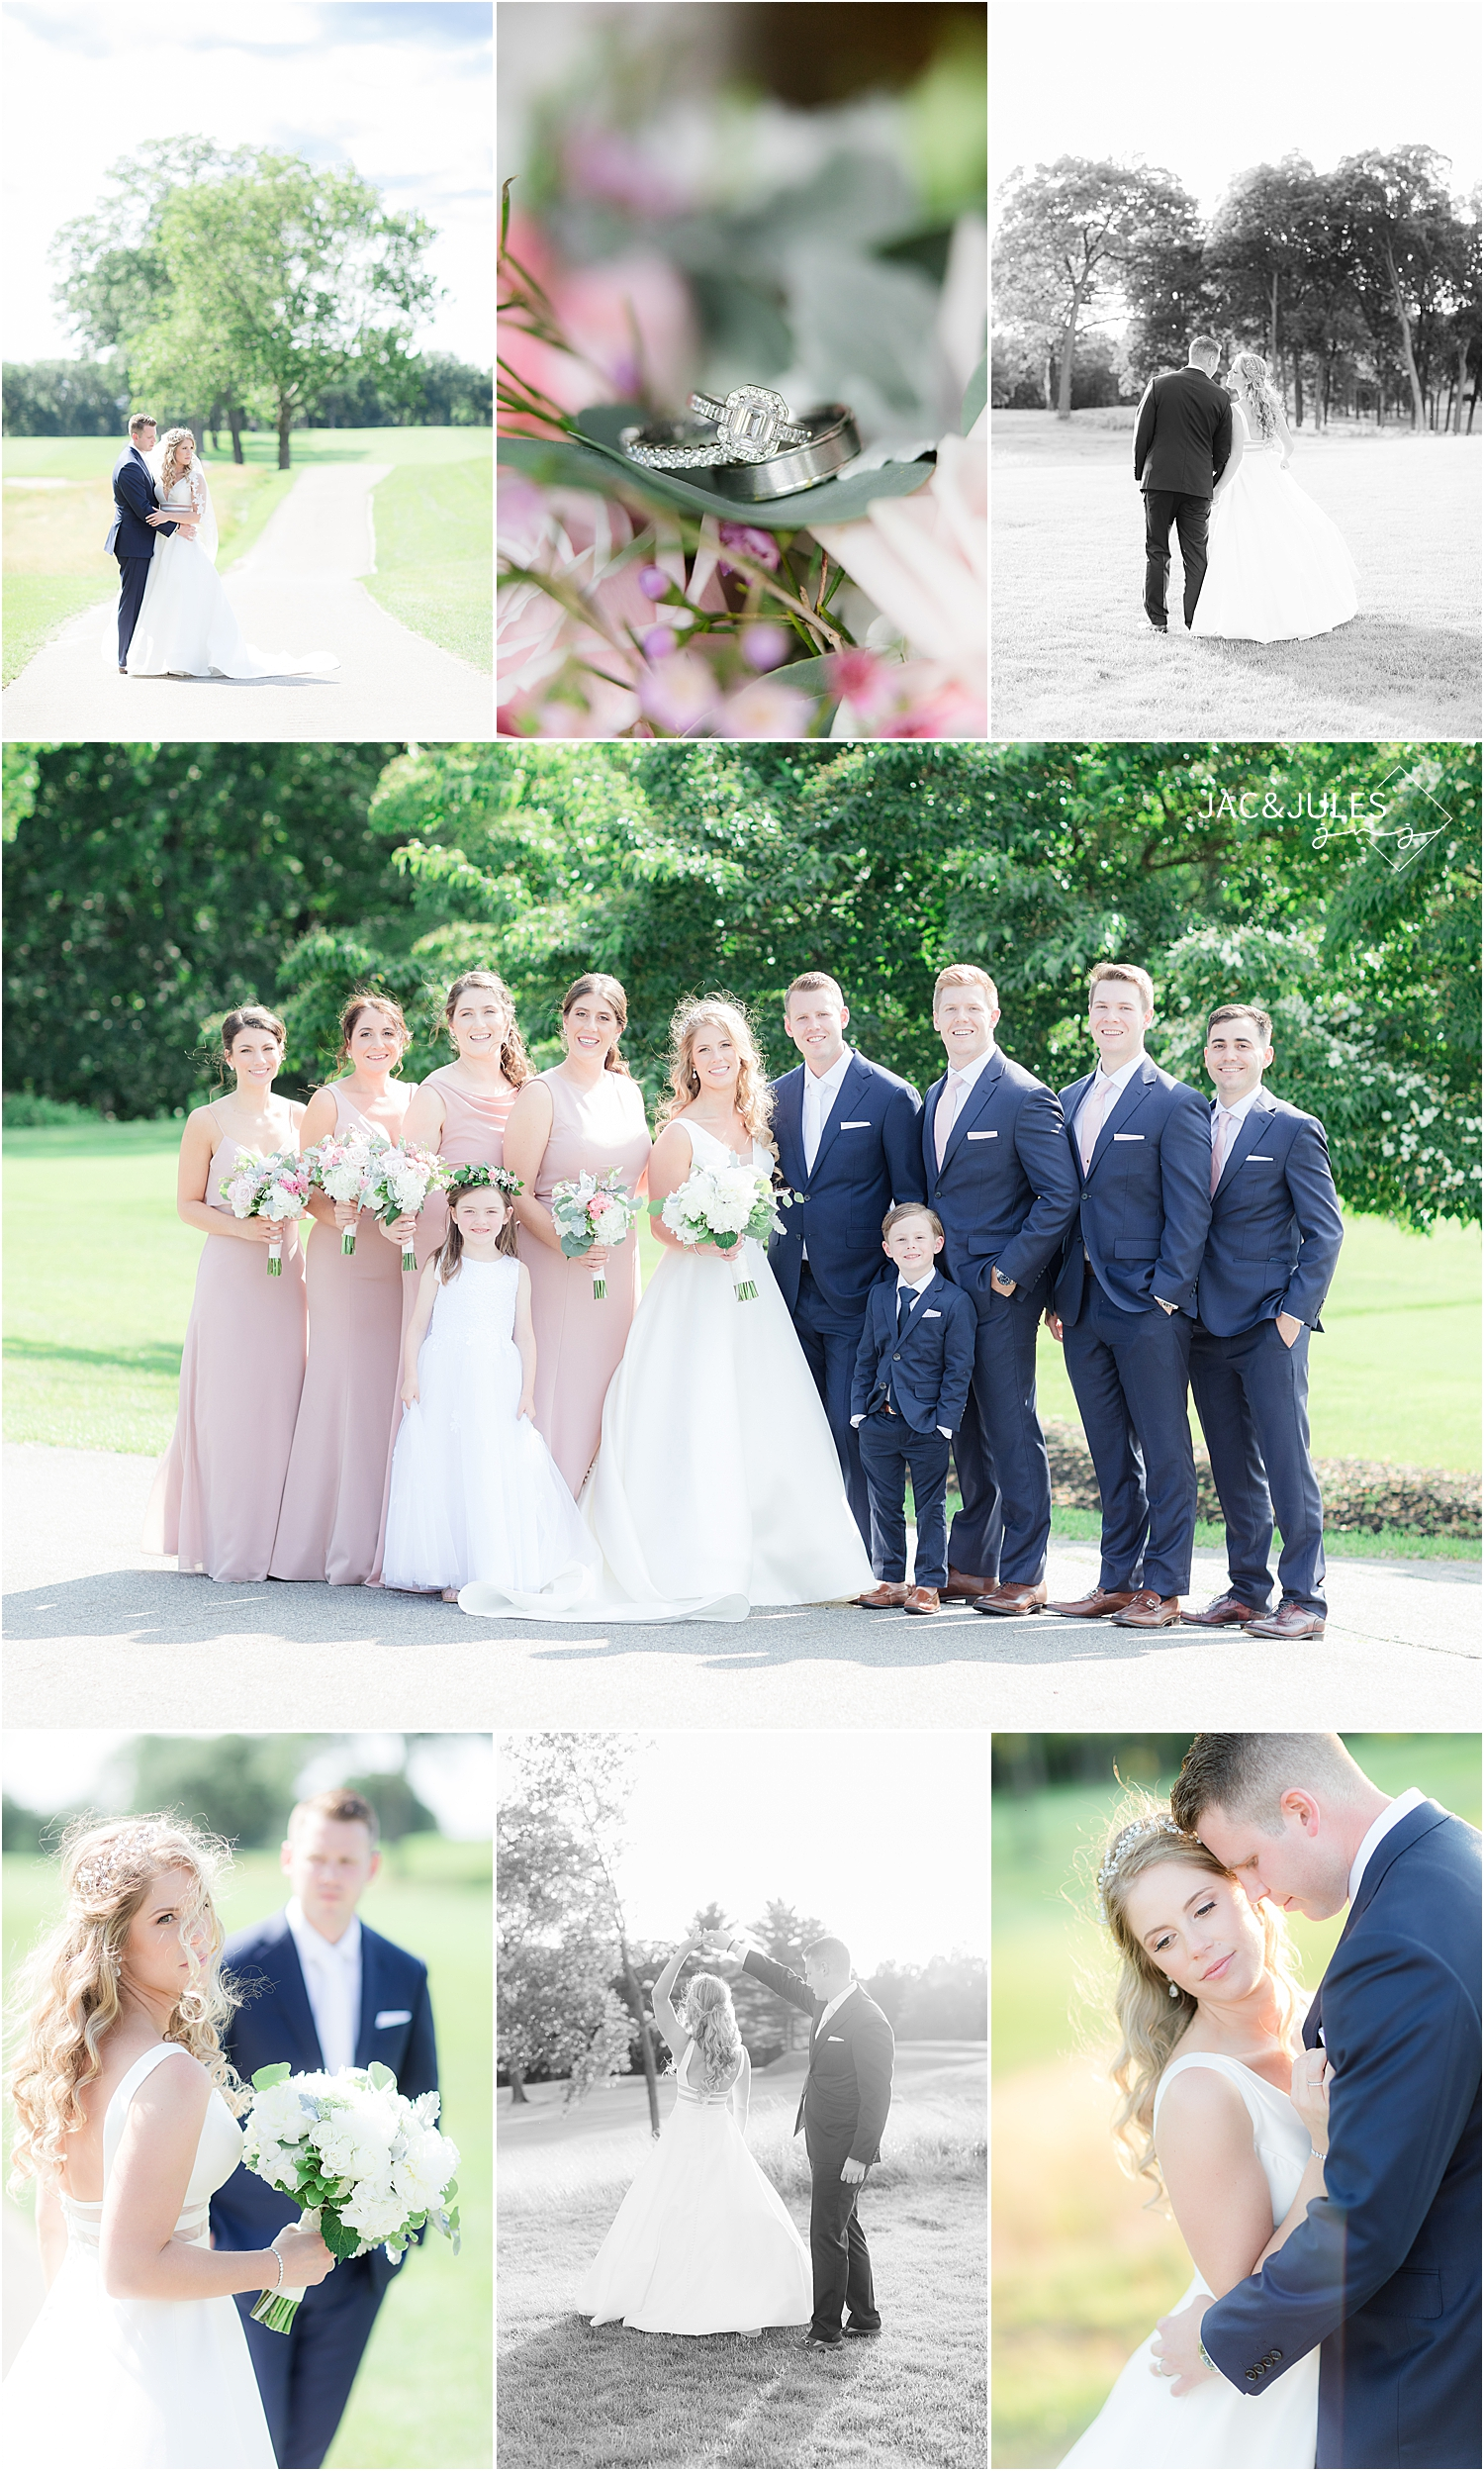 romantic wedding photos in natural light at north jersey country club